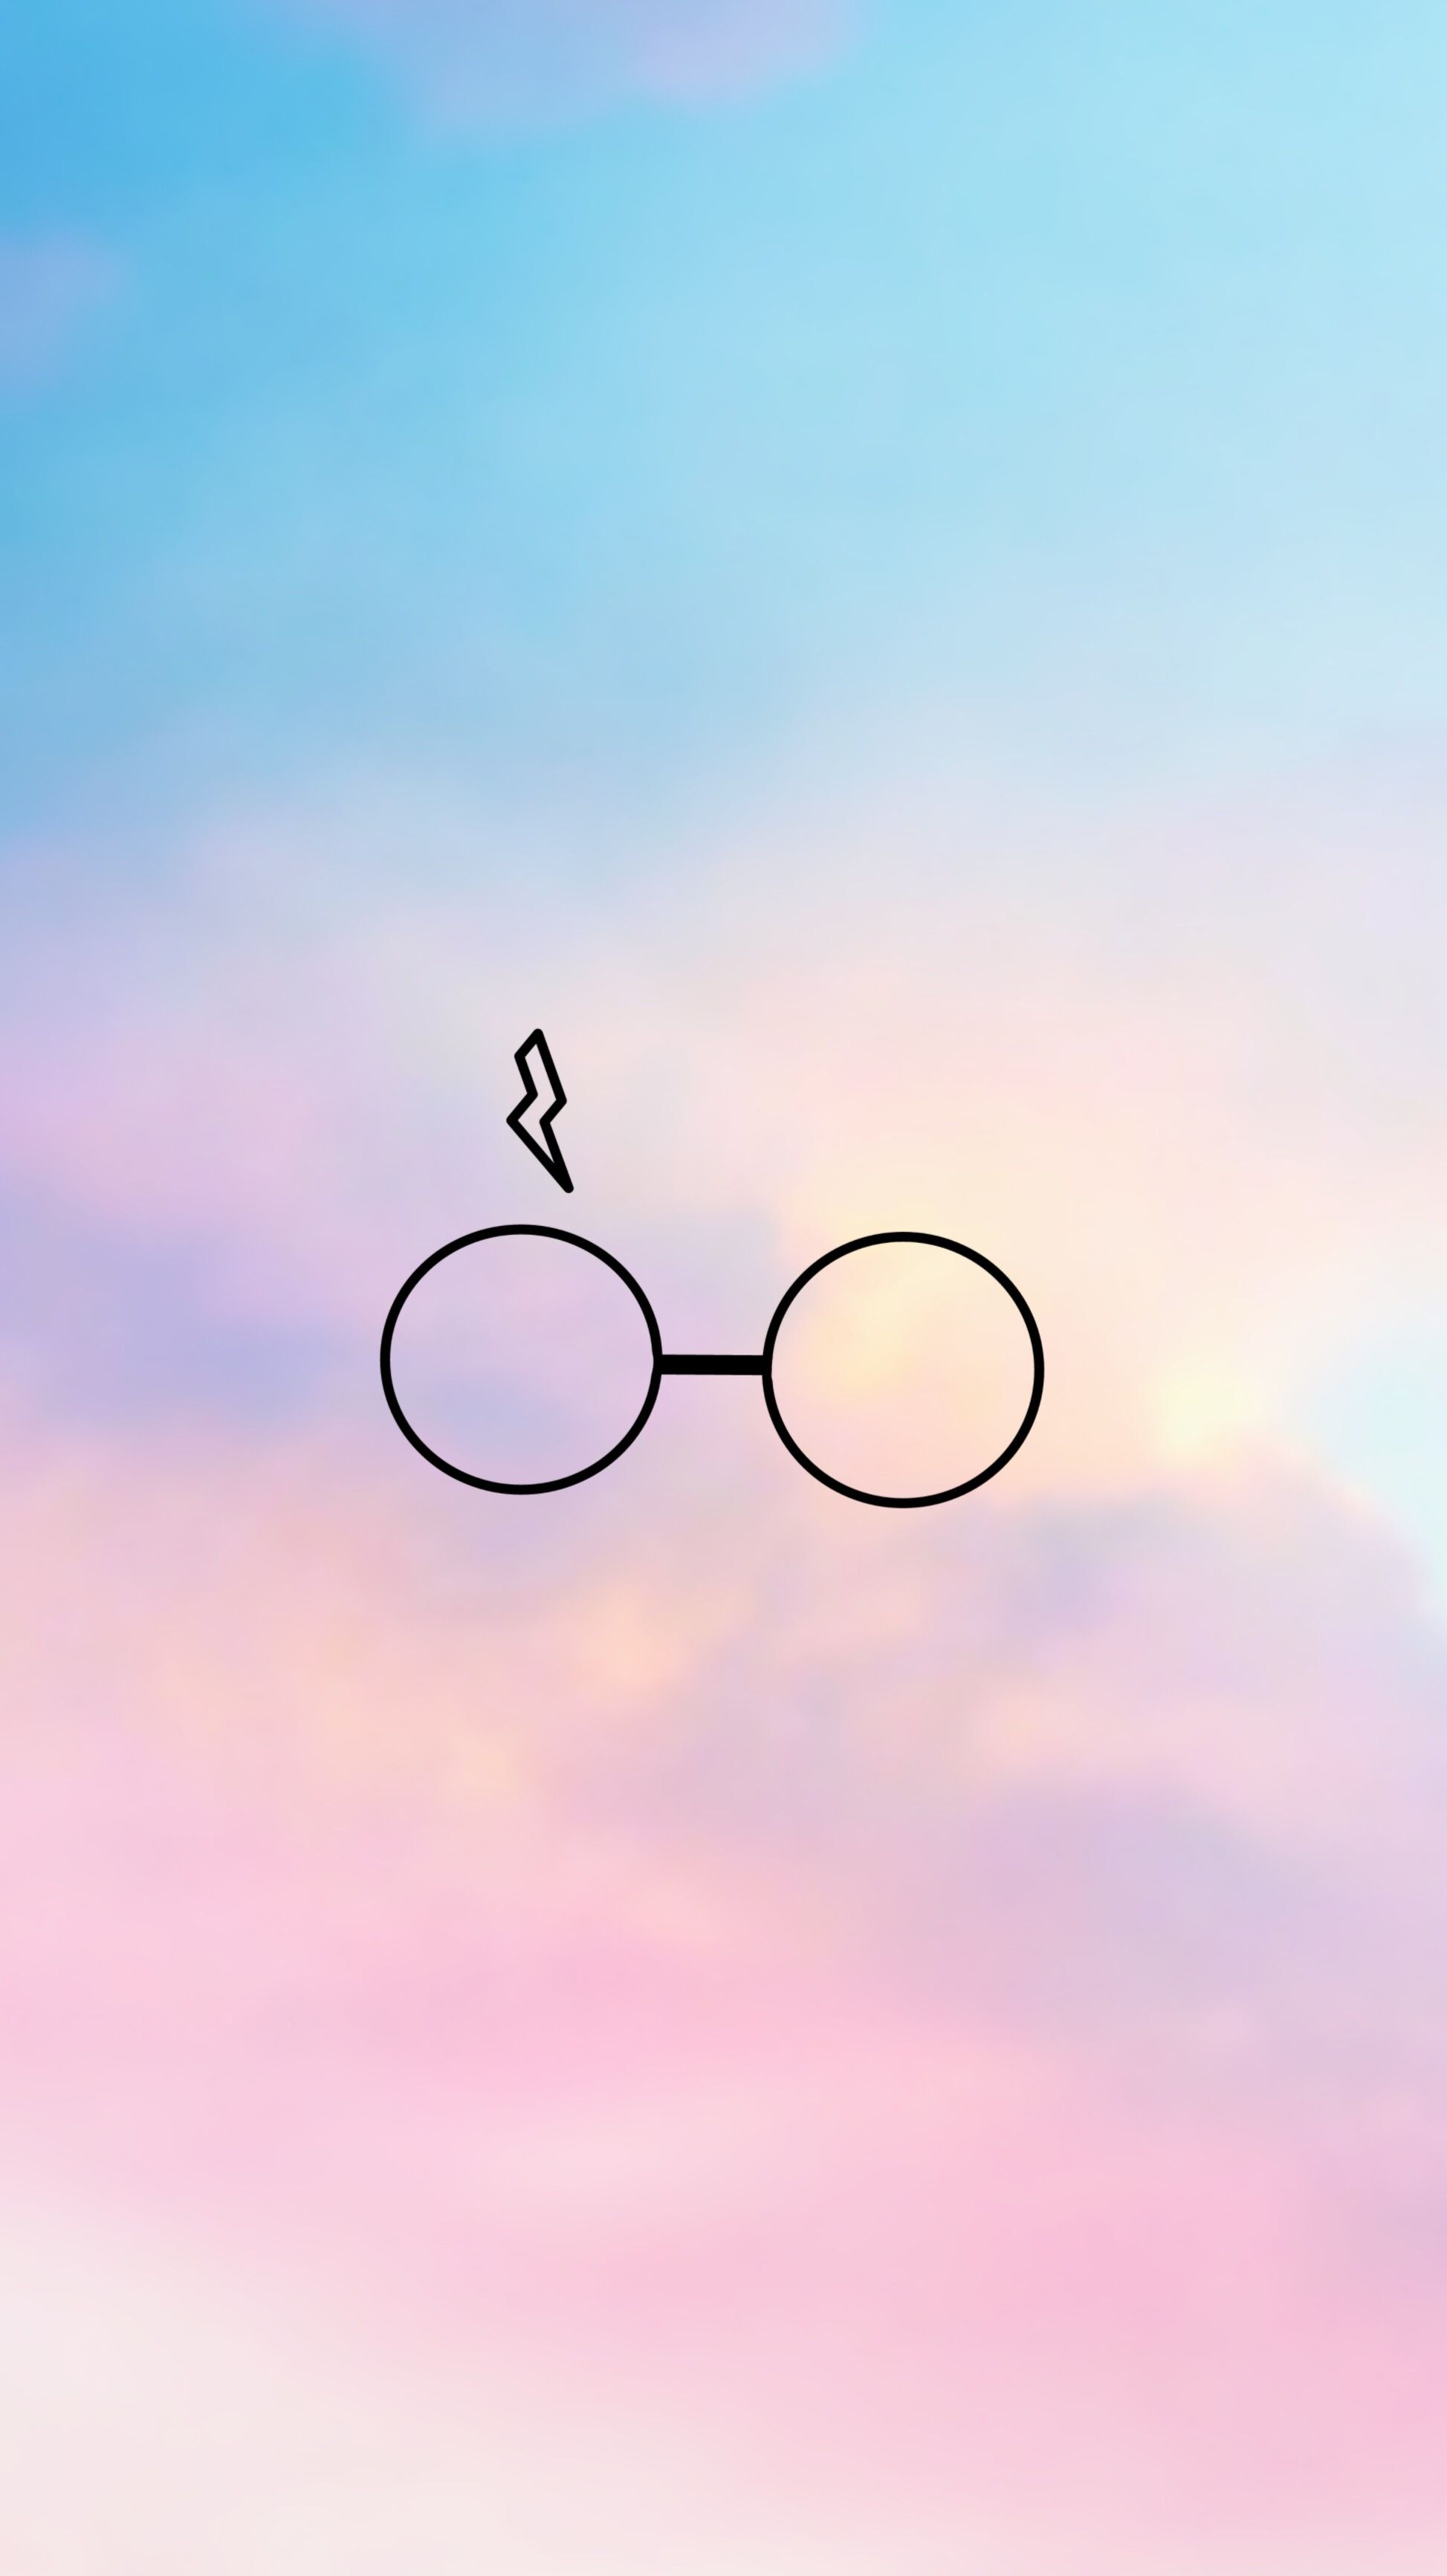 Aesthetic Lockscreen Wallpaper Harry Potter In 2020 Harry Potter Wallpaper Phone Harry Potter Iphone Wallpaper Cute Harry Potter